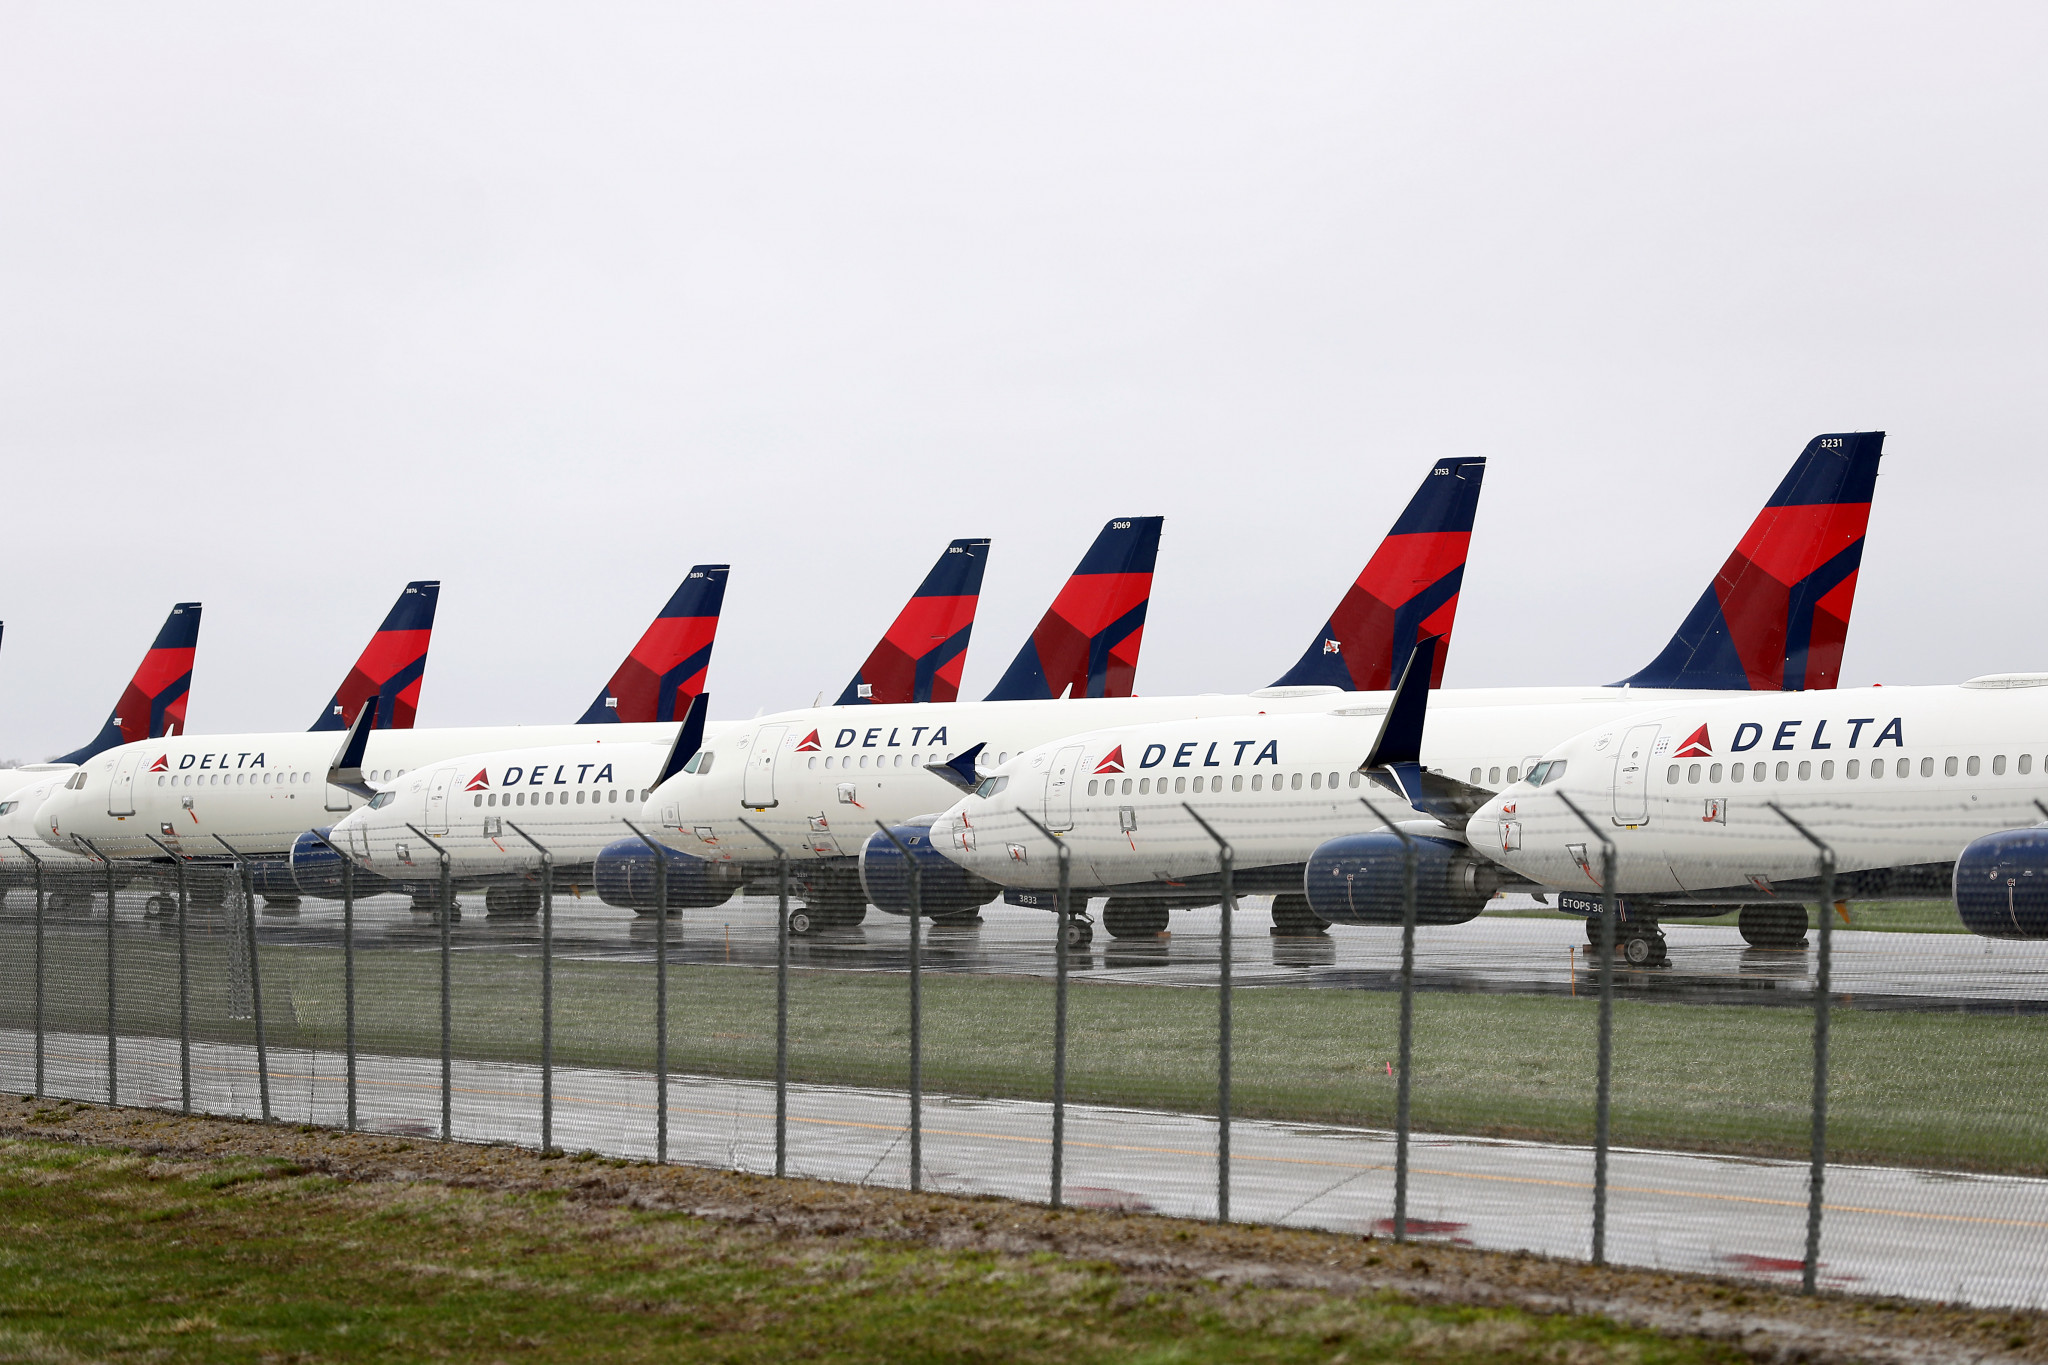 Los Angeles 2028 sponsor Delta Air Lines posts huge $15.6 billion loss